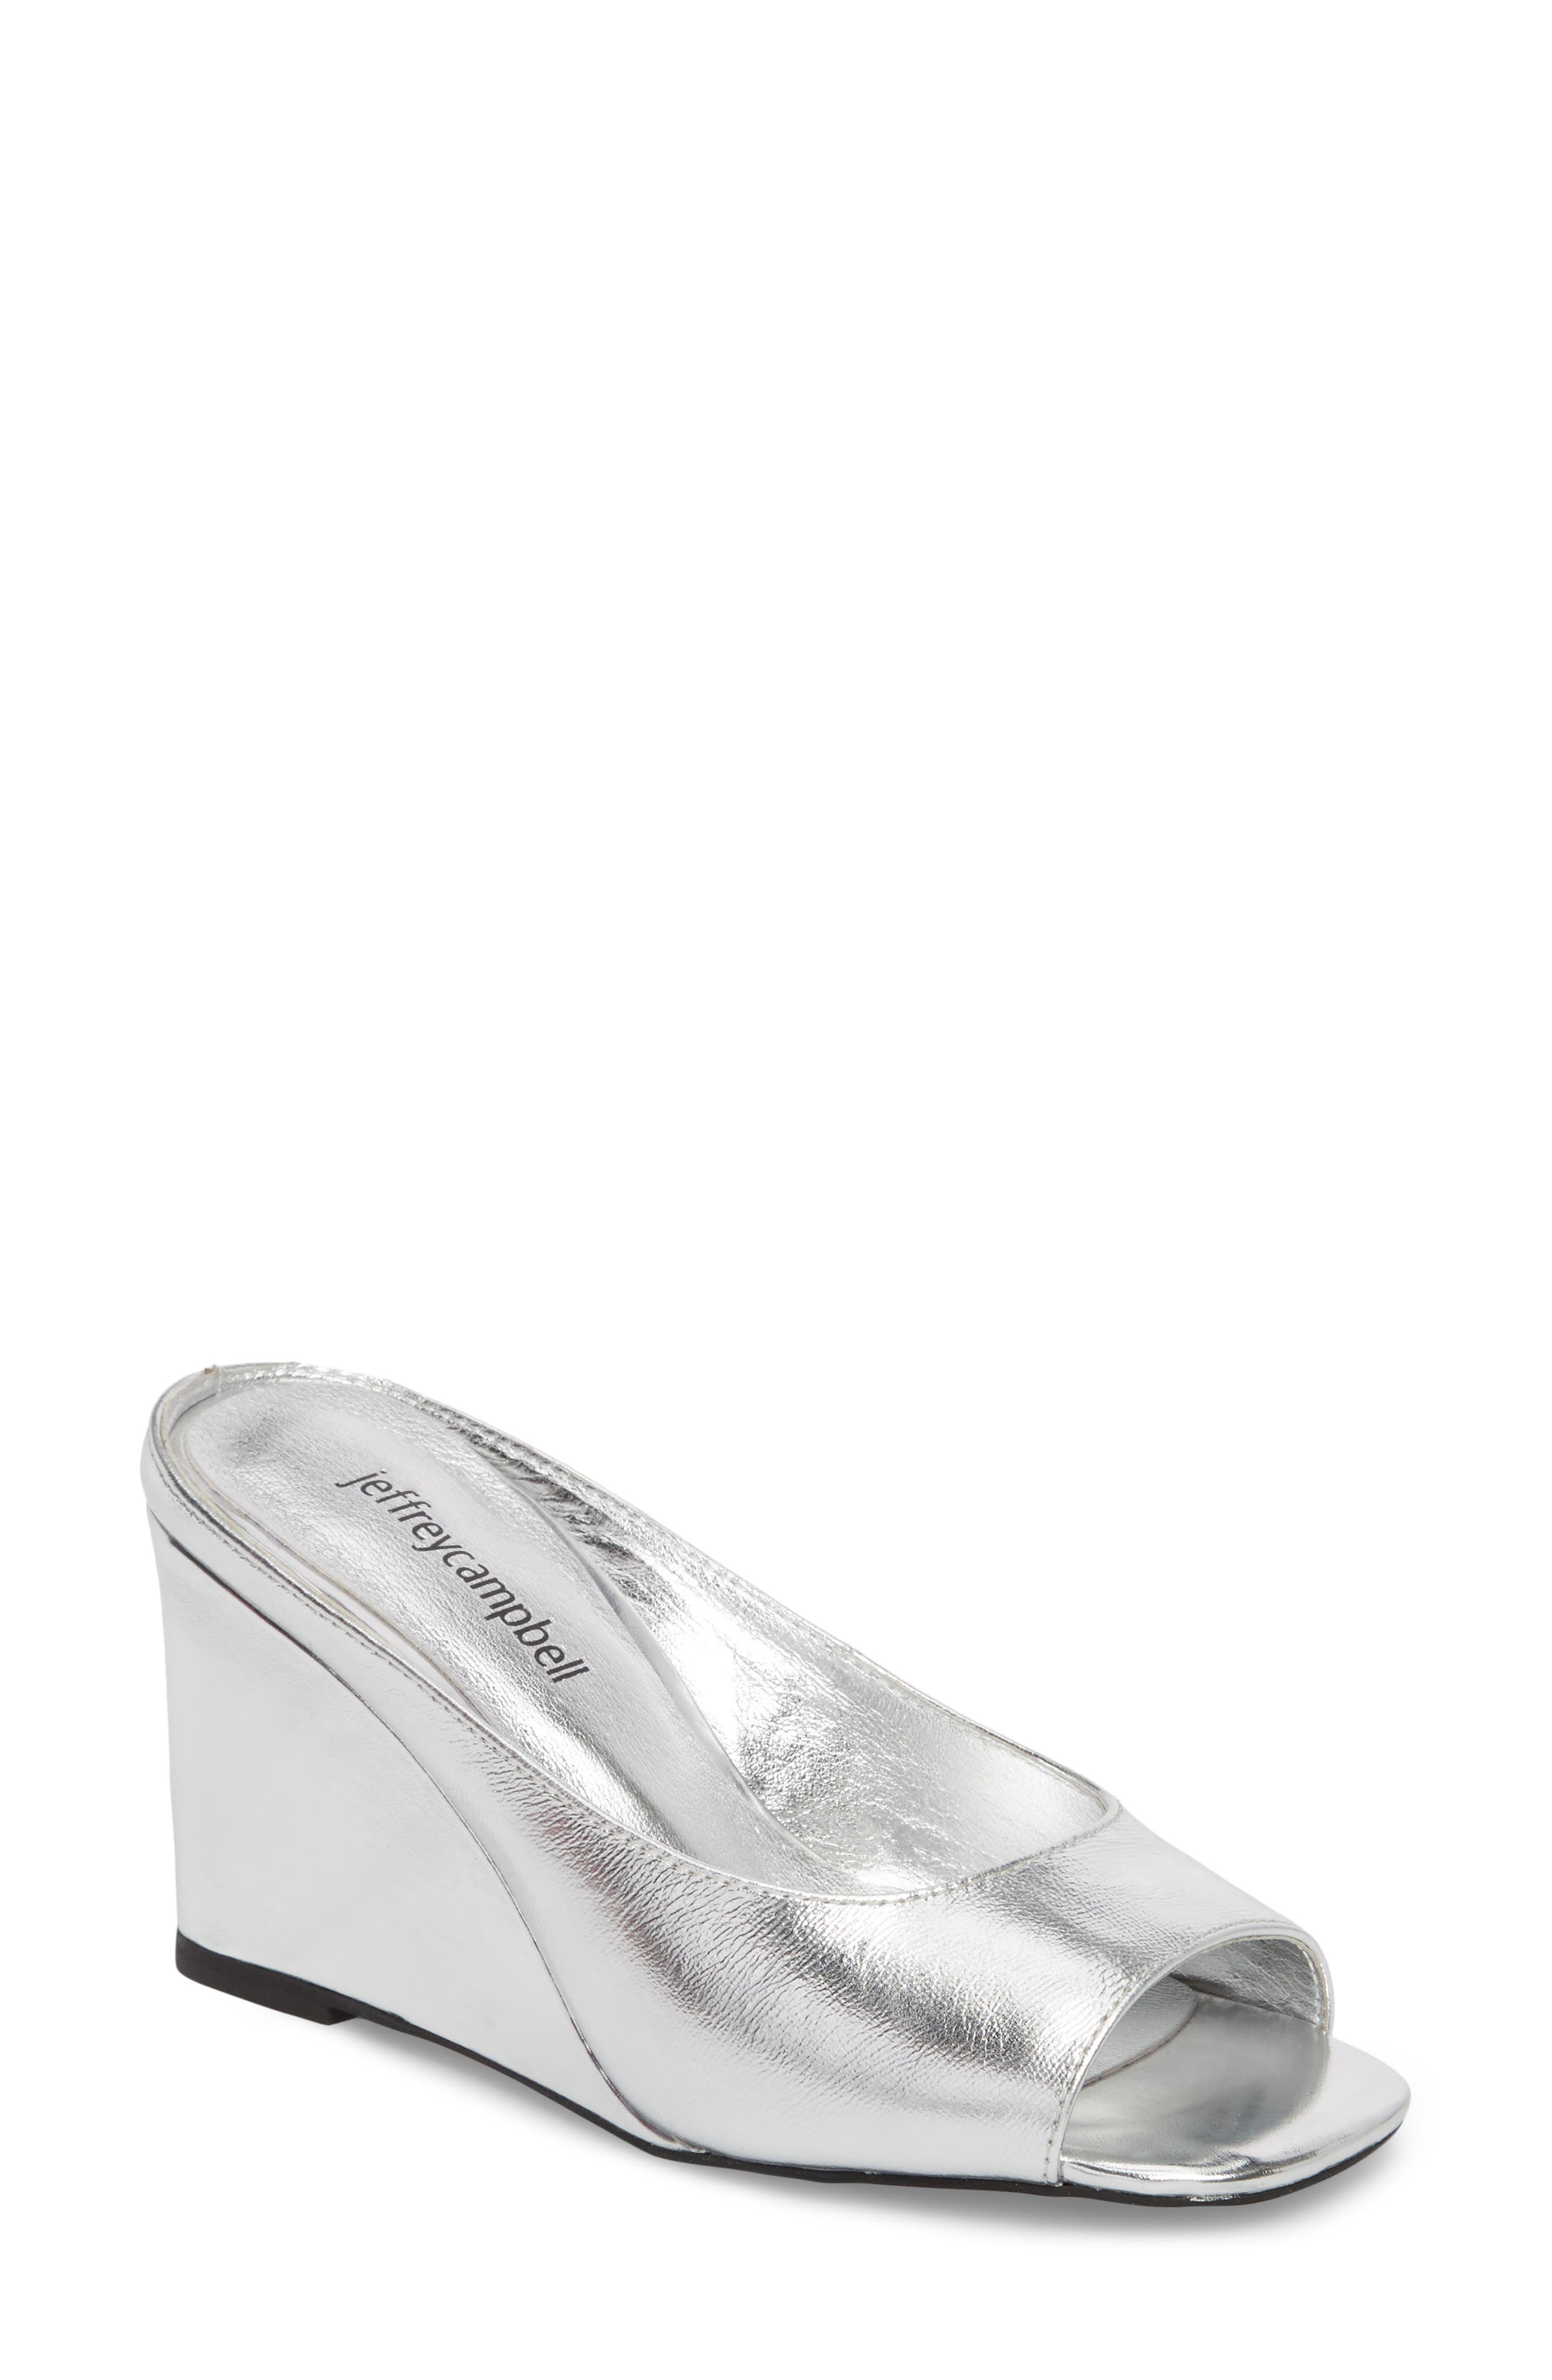 Generous Wedge Sandal,                             Main thumbnail 1, color,                             Silver Leather